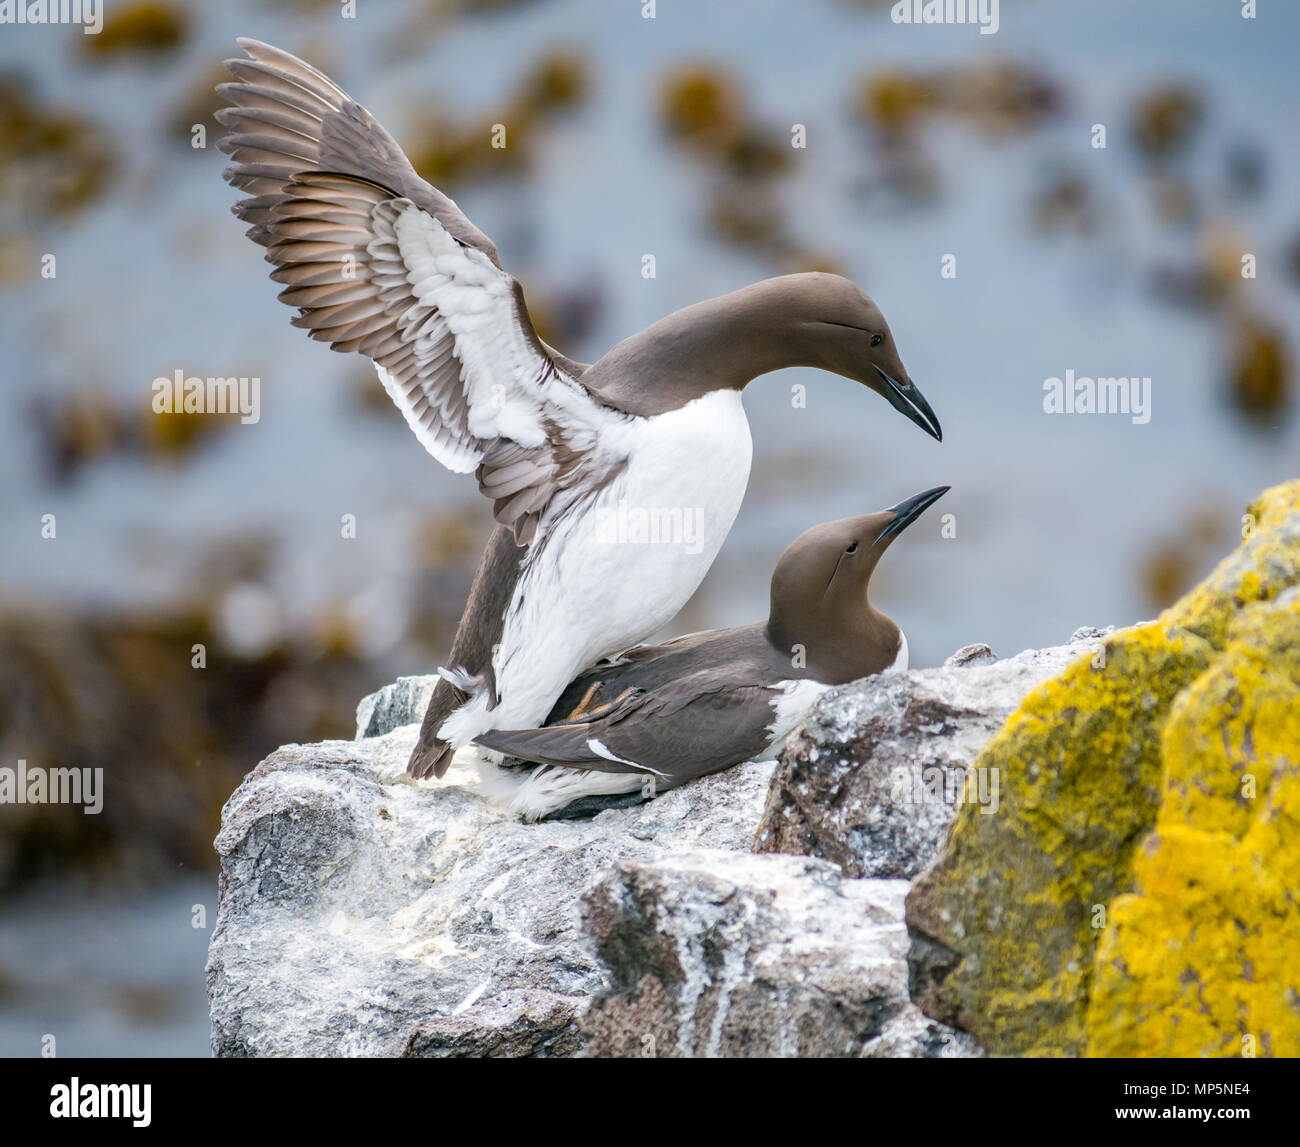 a-mating-pair-of-guillemot-seabirds-uria